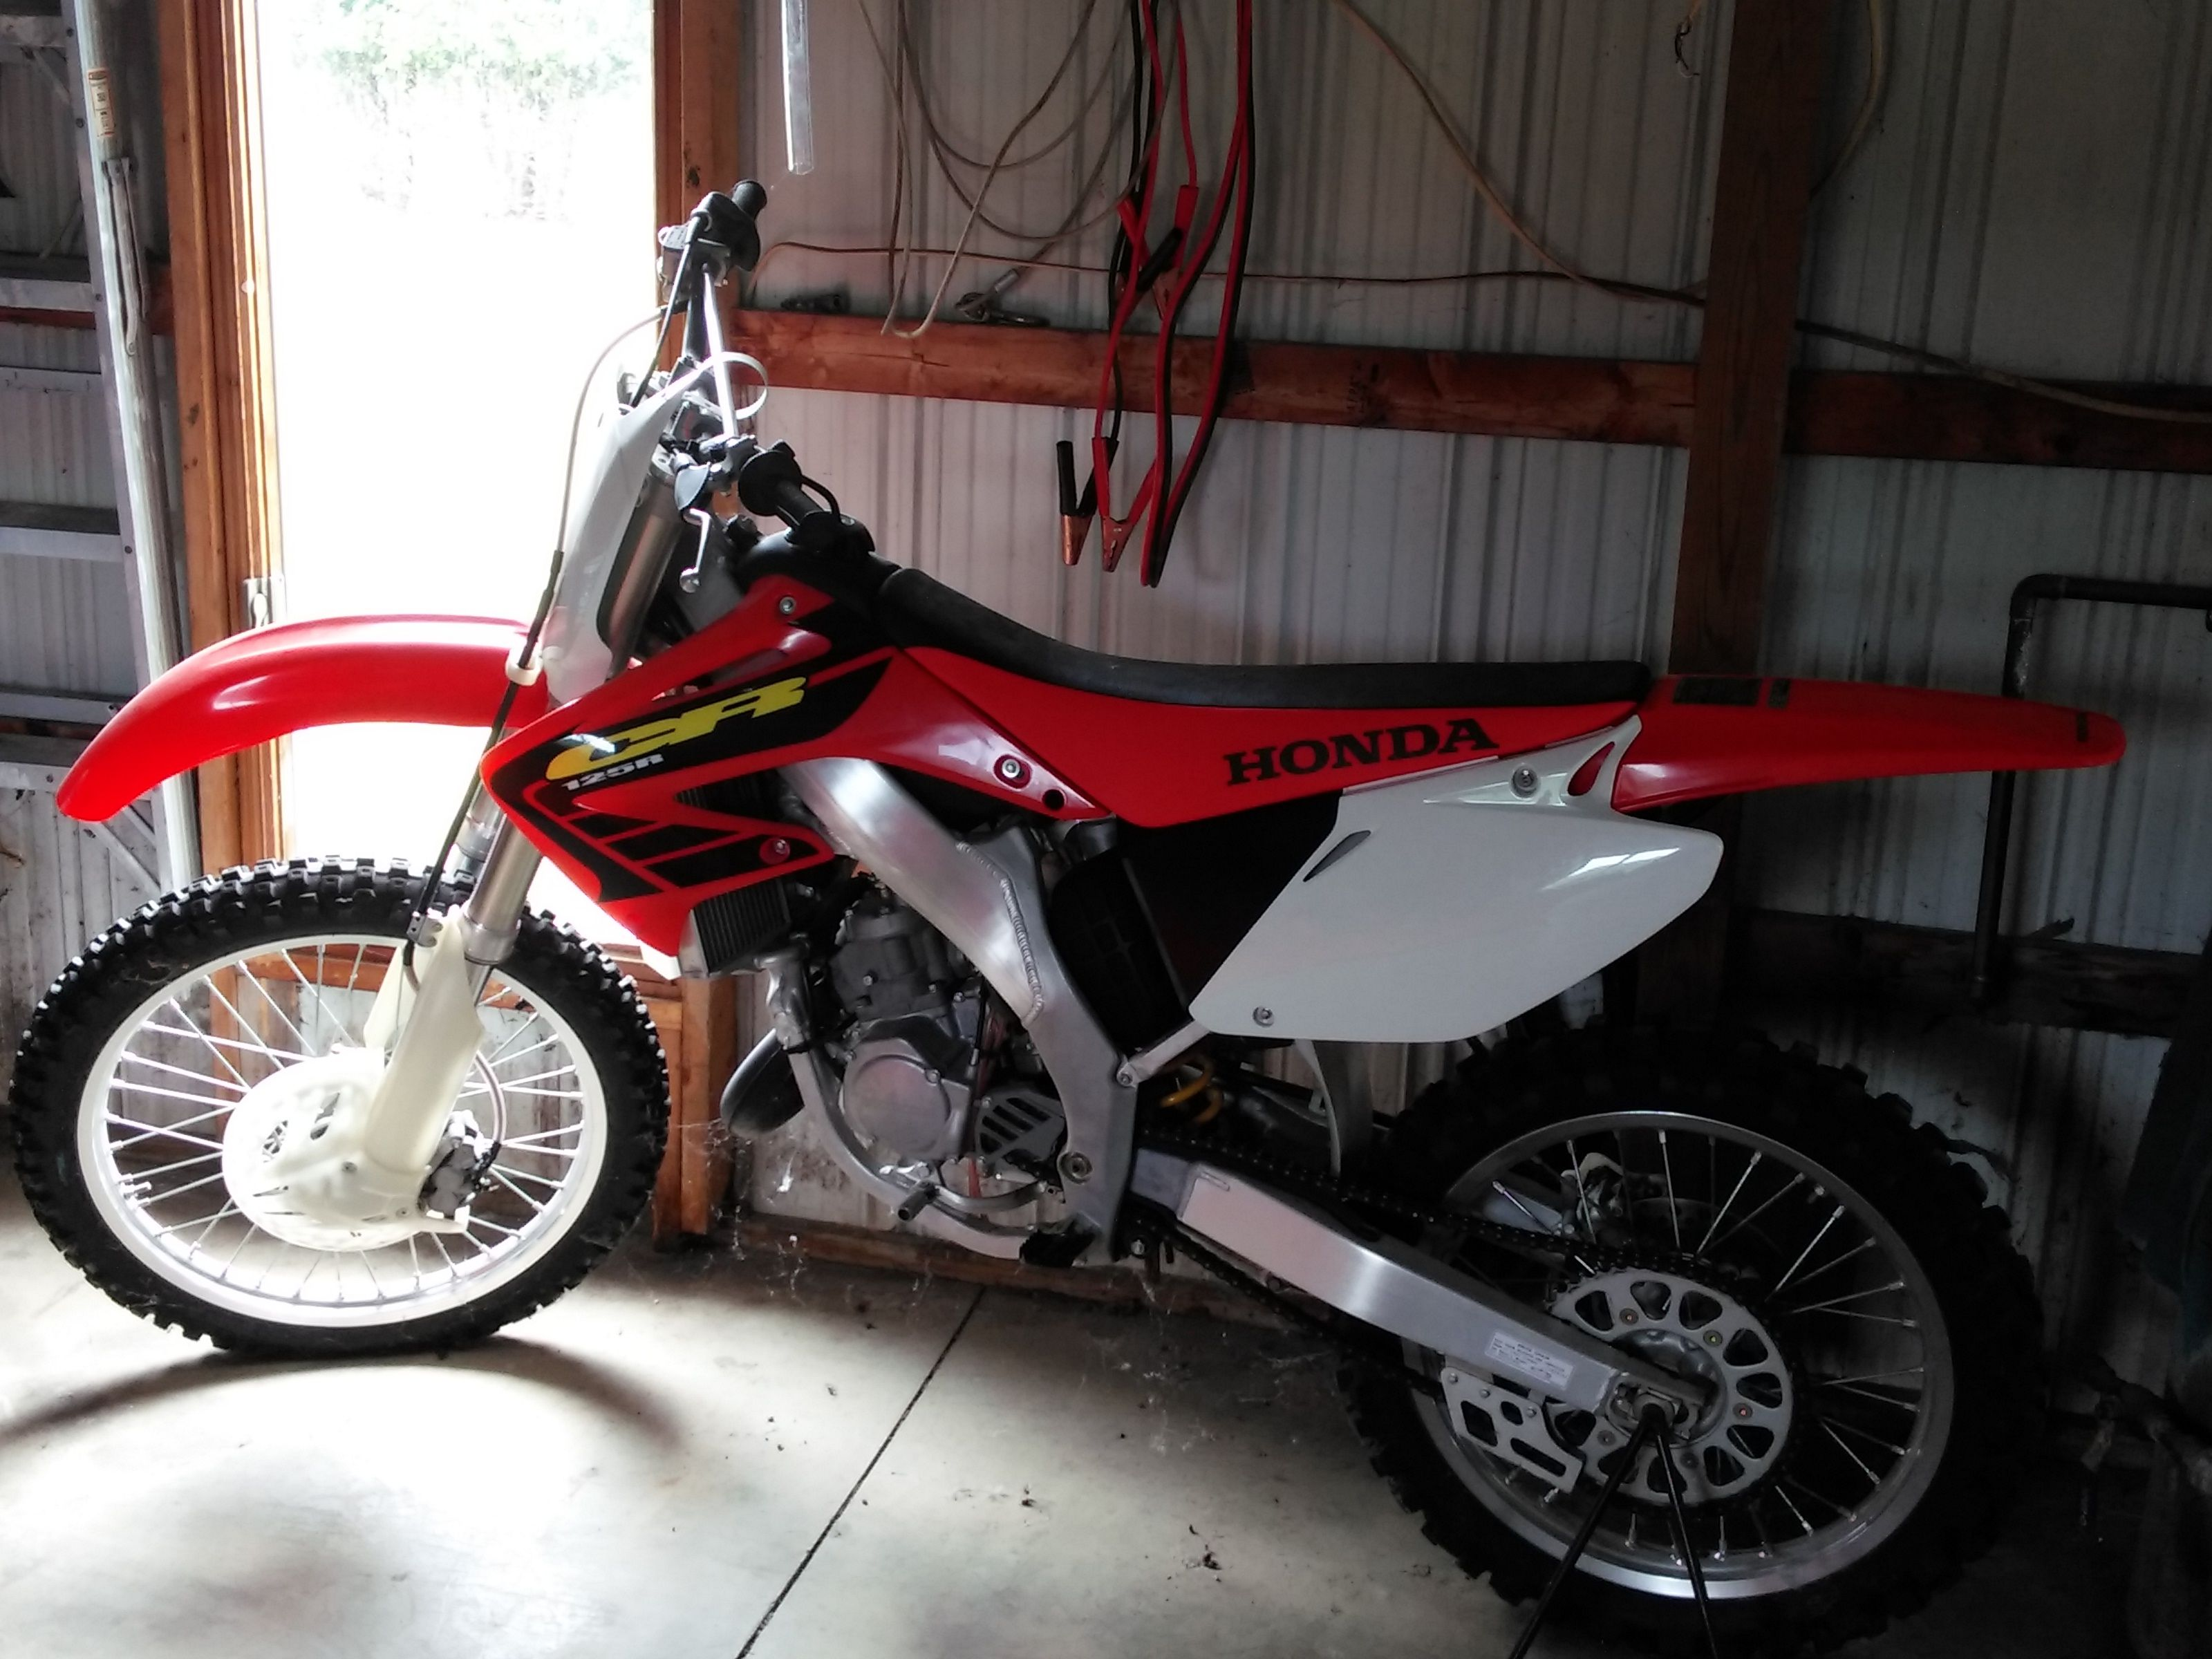 Nice 2002 Honda CR125 2 Stroke Dirt Bike In Okeleyu0027s Garage Sale In Wolcottville  , IN For $1400.00. Wheels Still Have Nubs On Them. Hardly Ever Used.